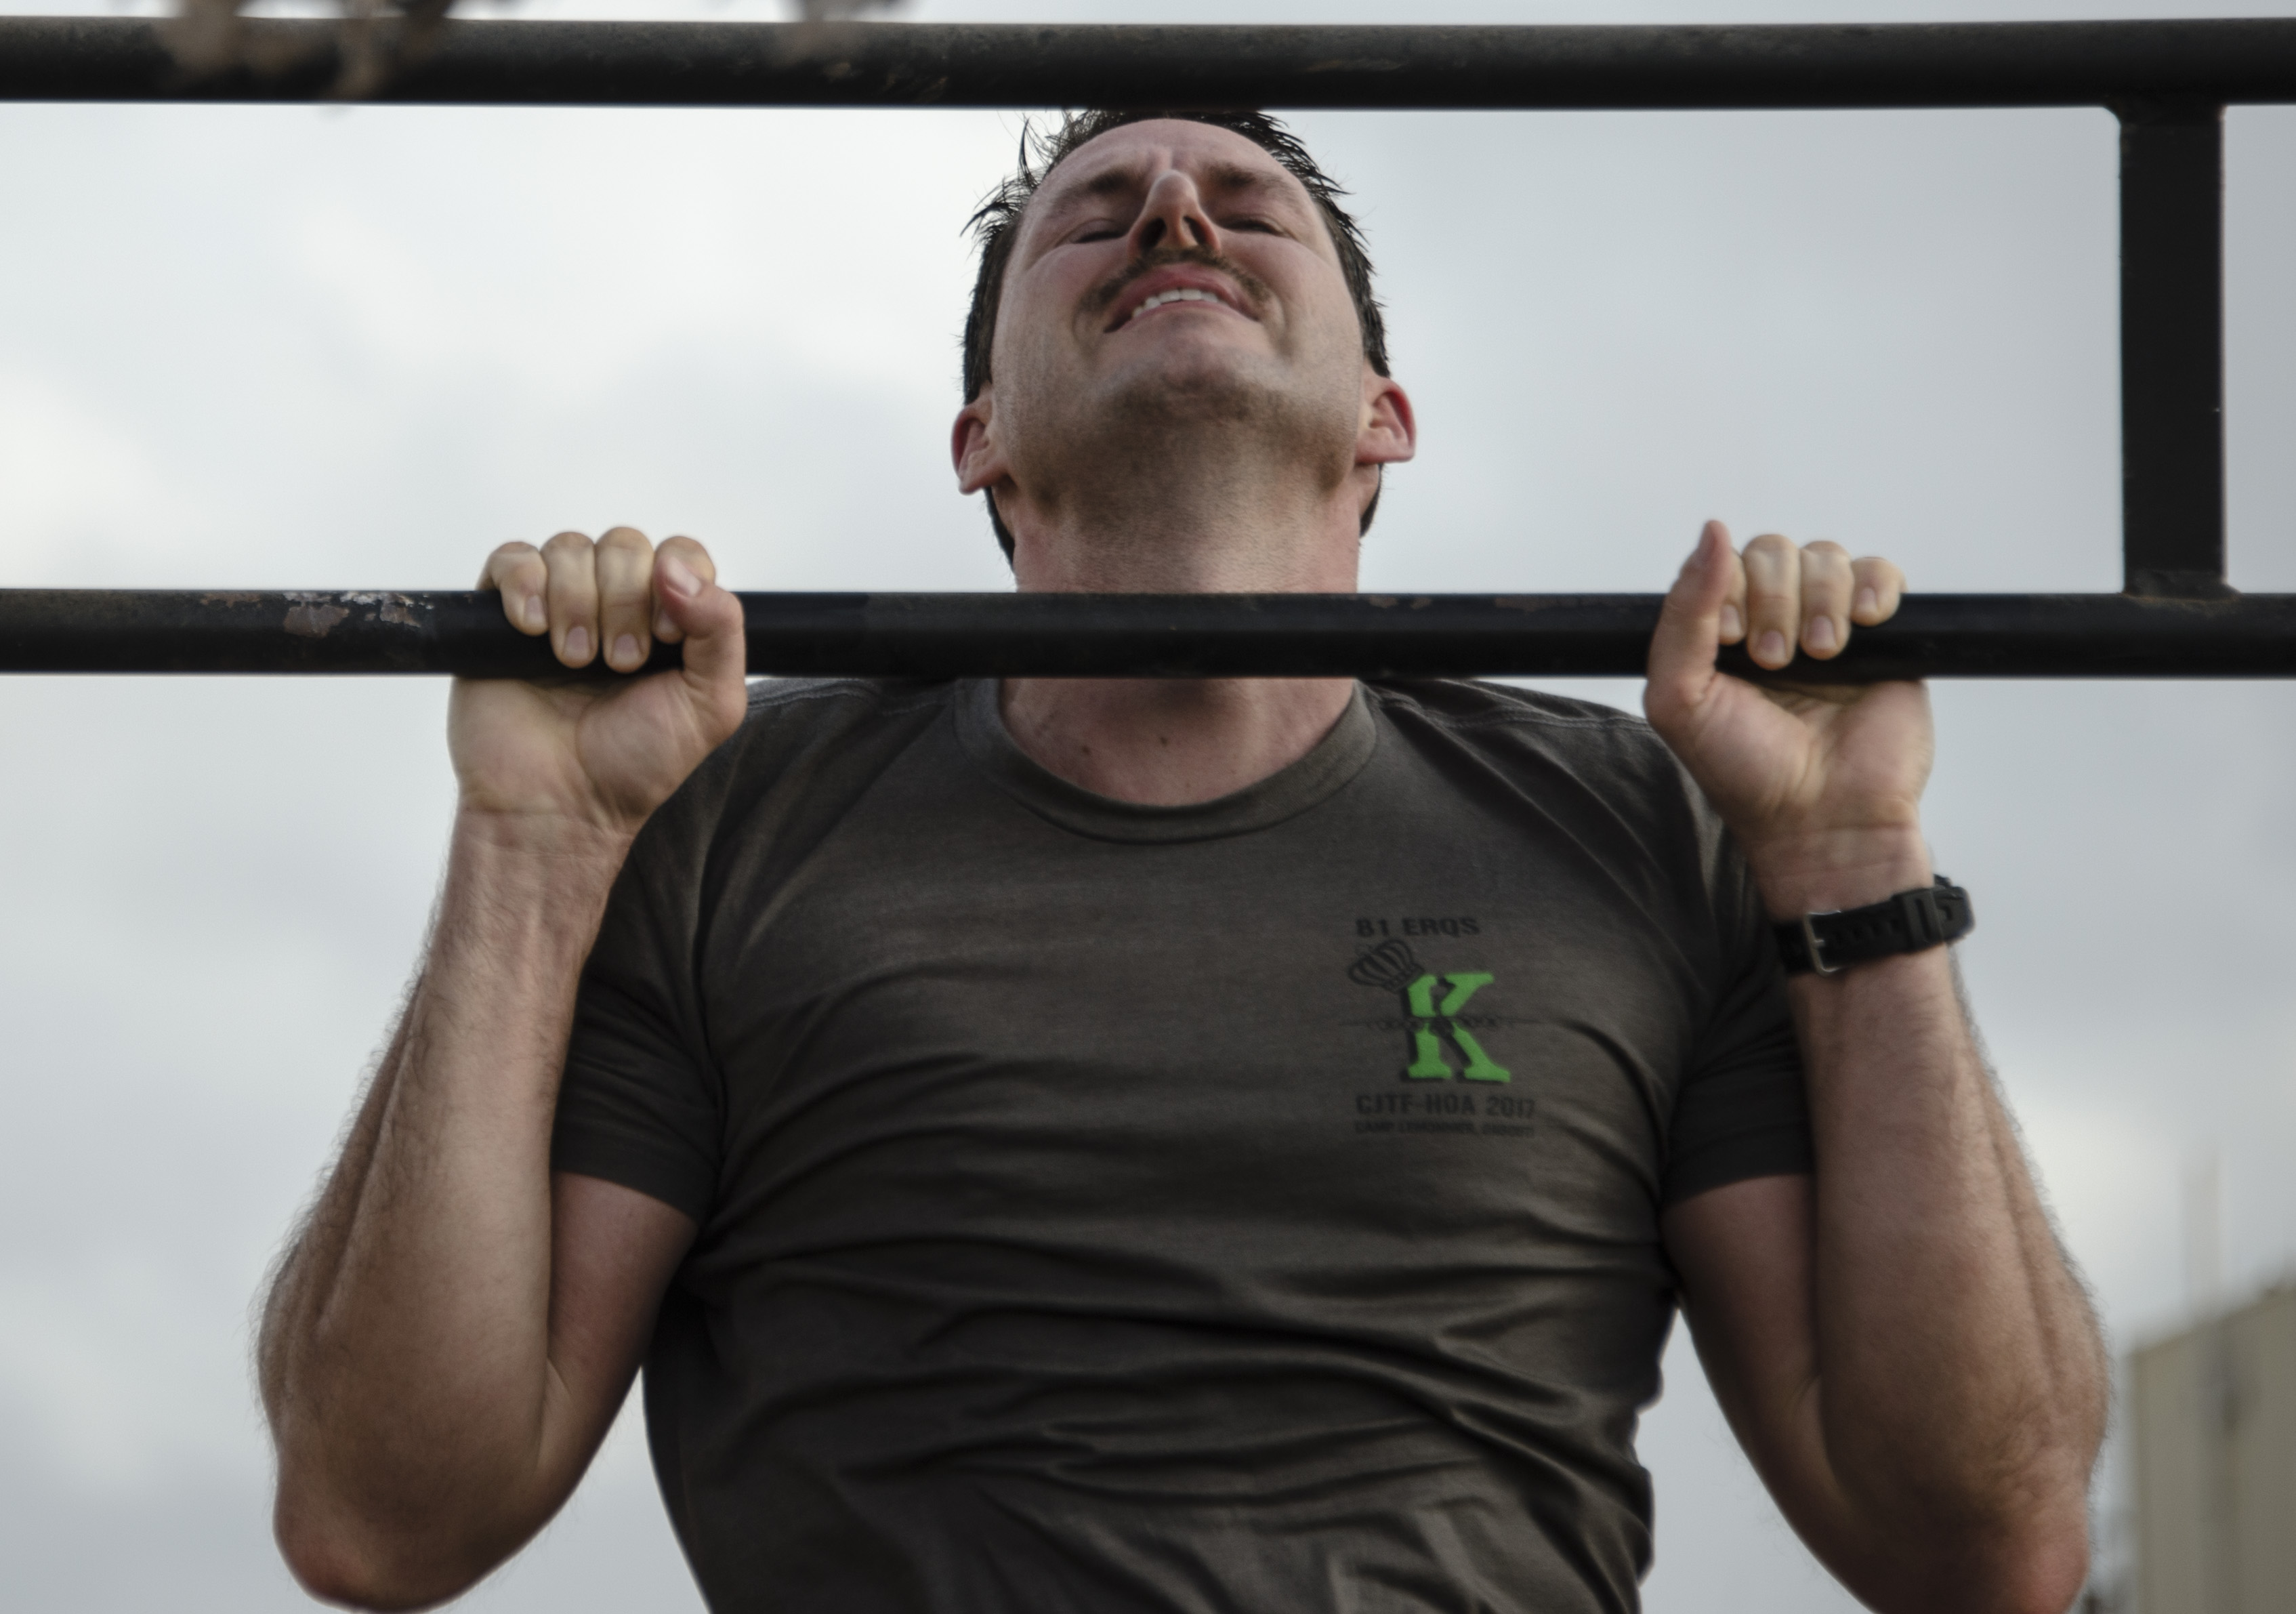 A U.S. service member participates in the pull-up portion of the Joint Warrior Competition (JWC) on Camp Lemonnier, Djibouti, March 25, 2017. Participants in the JWC test themselves physically in various events including 20 timed pull-ups. (U.S. Air National Guard photo by Staff Sgt. Christian Jadot)